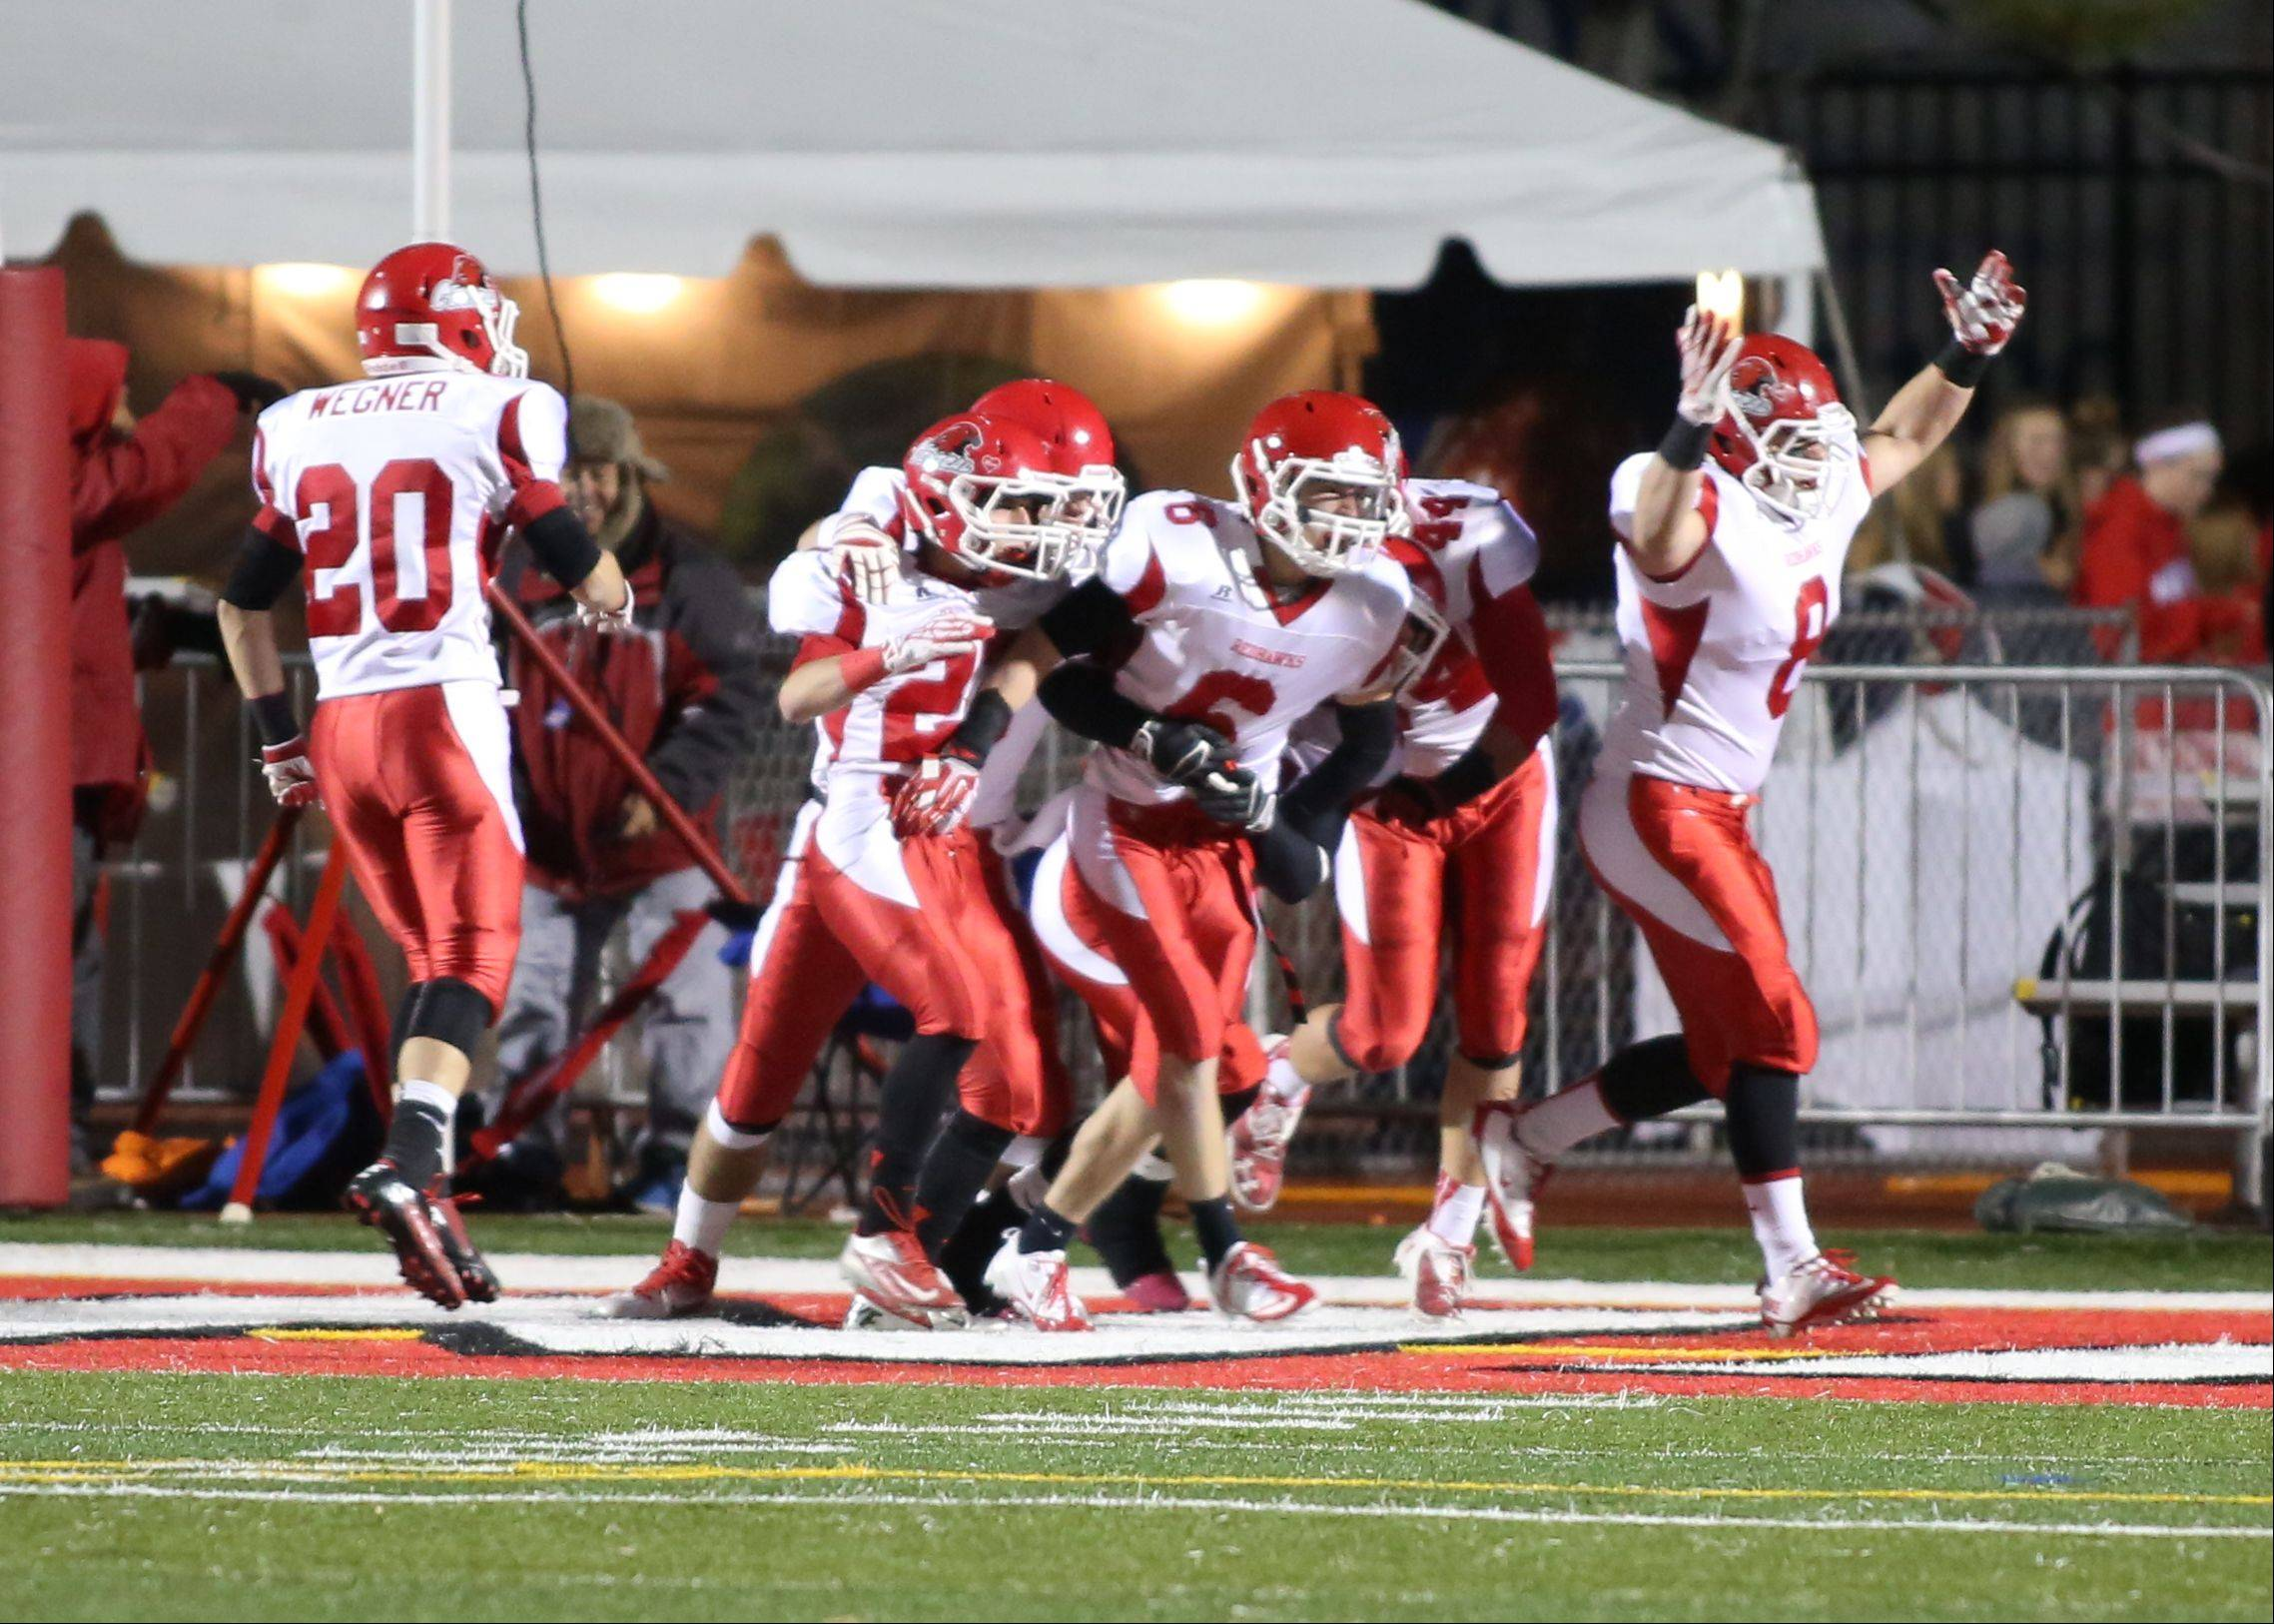 Week -9- Photos from the Naperville North vs. Naperville Central football game on Friday, Oct. 25 at North Central College.